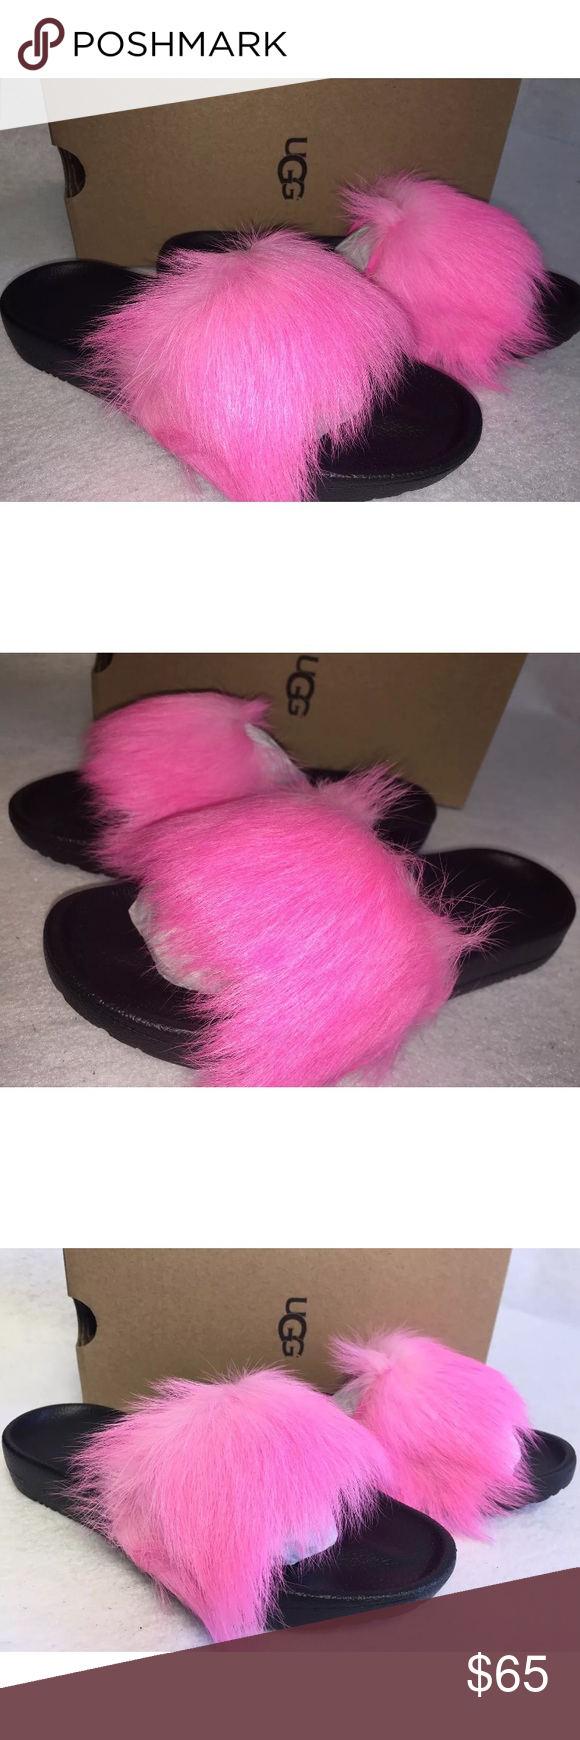 5e5138559aa UGG FLUFFY ROYALE NEON PINK SLIPPERS NEW size 7 UGG FLUFFY ROYALE ...